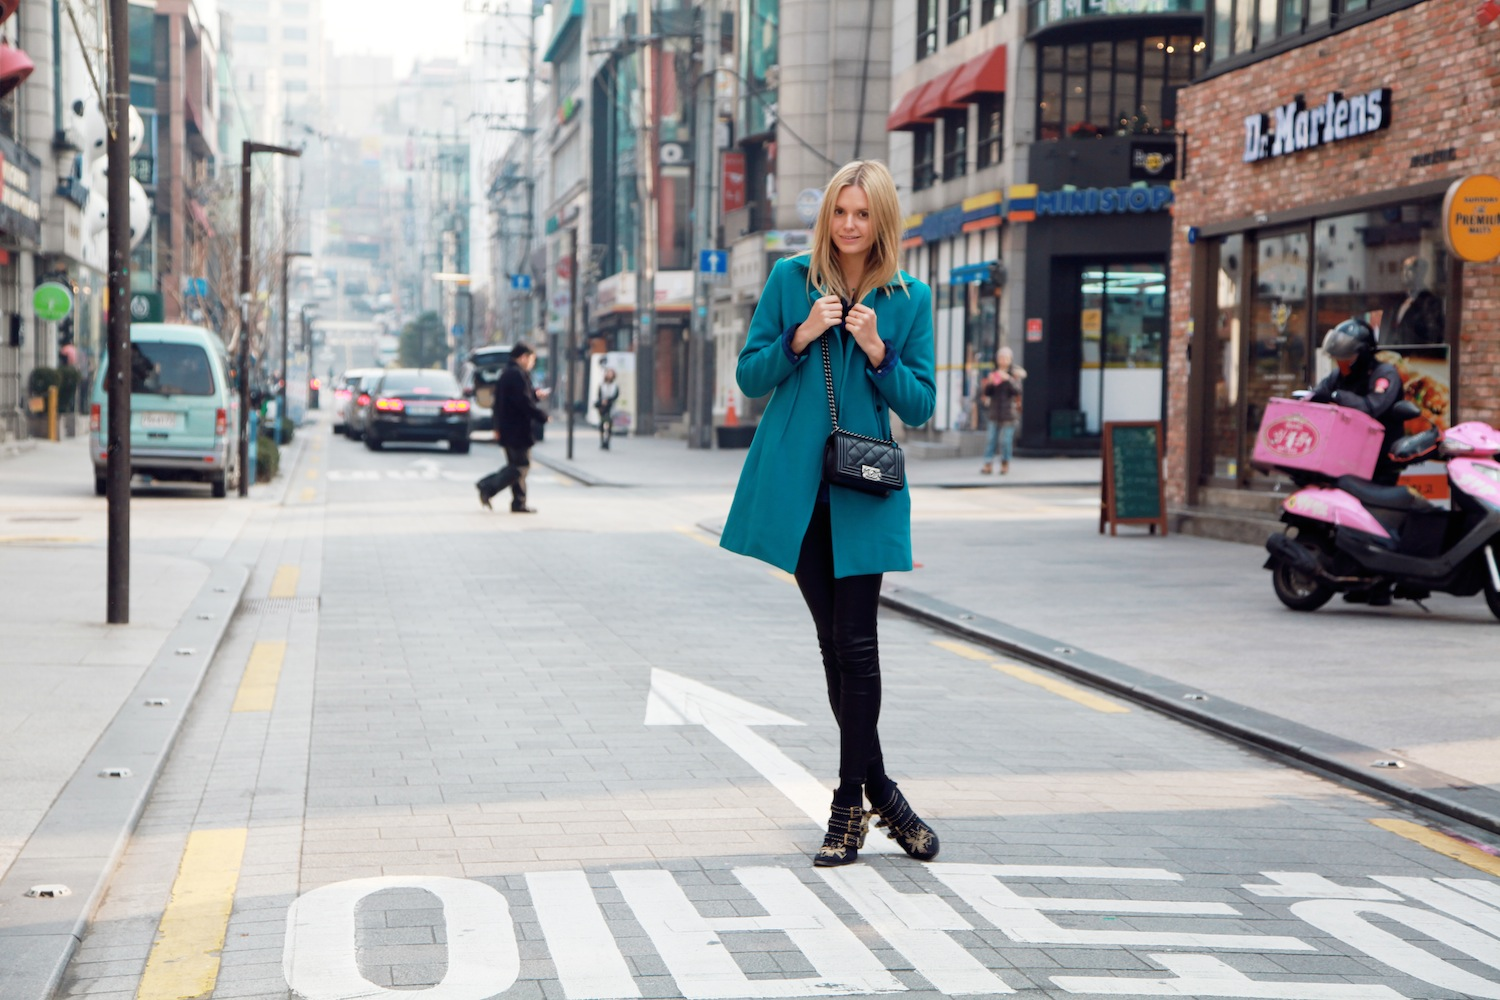 A model poses on a street in Gangnam.